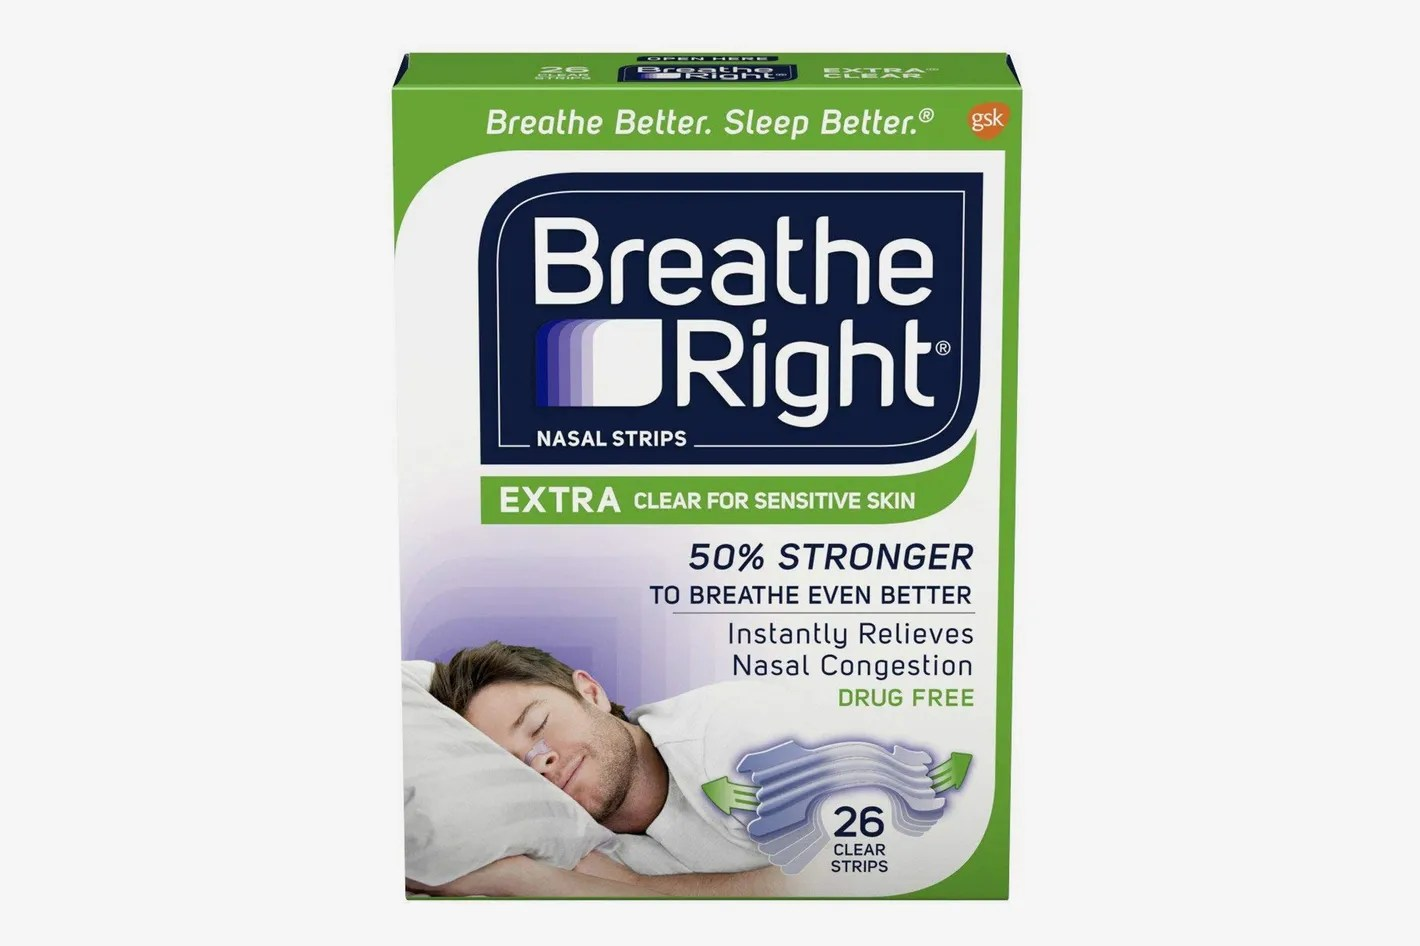 Stop Snoring Aids Breathe Right Nasal Strips To Stop Snoring Drug Free Extra Clear 26 Count